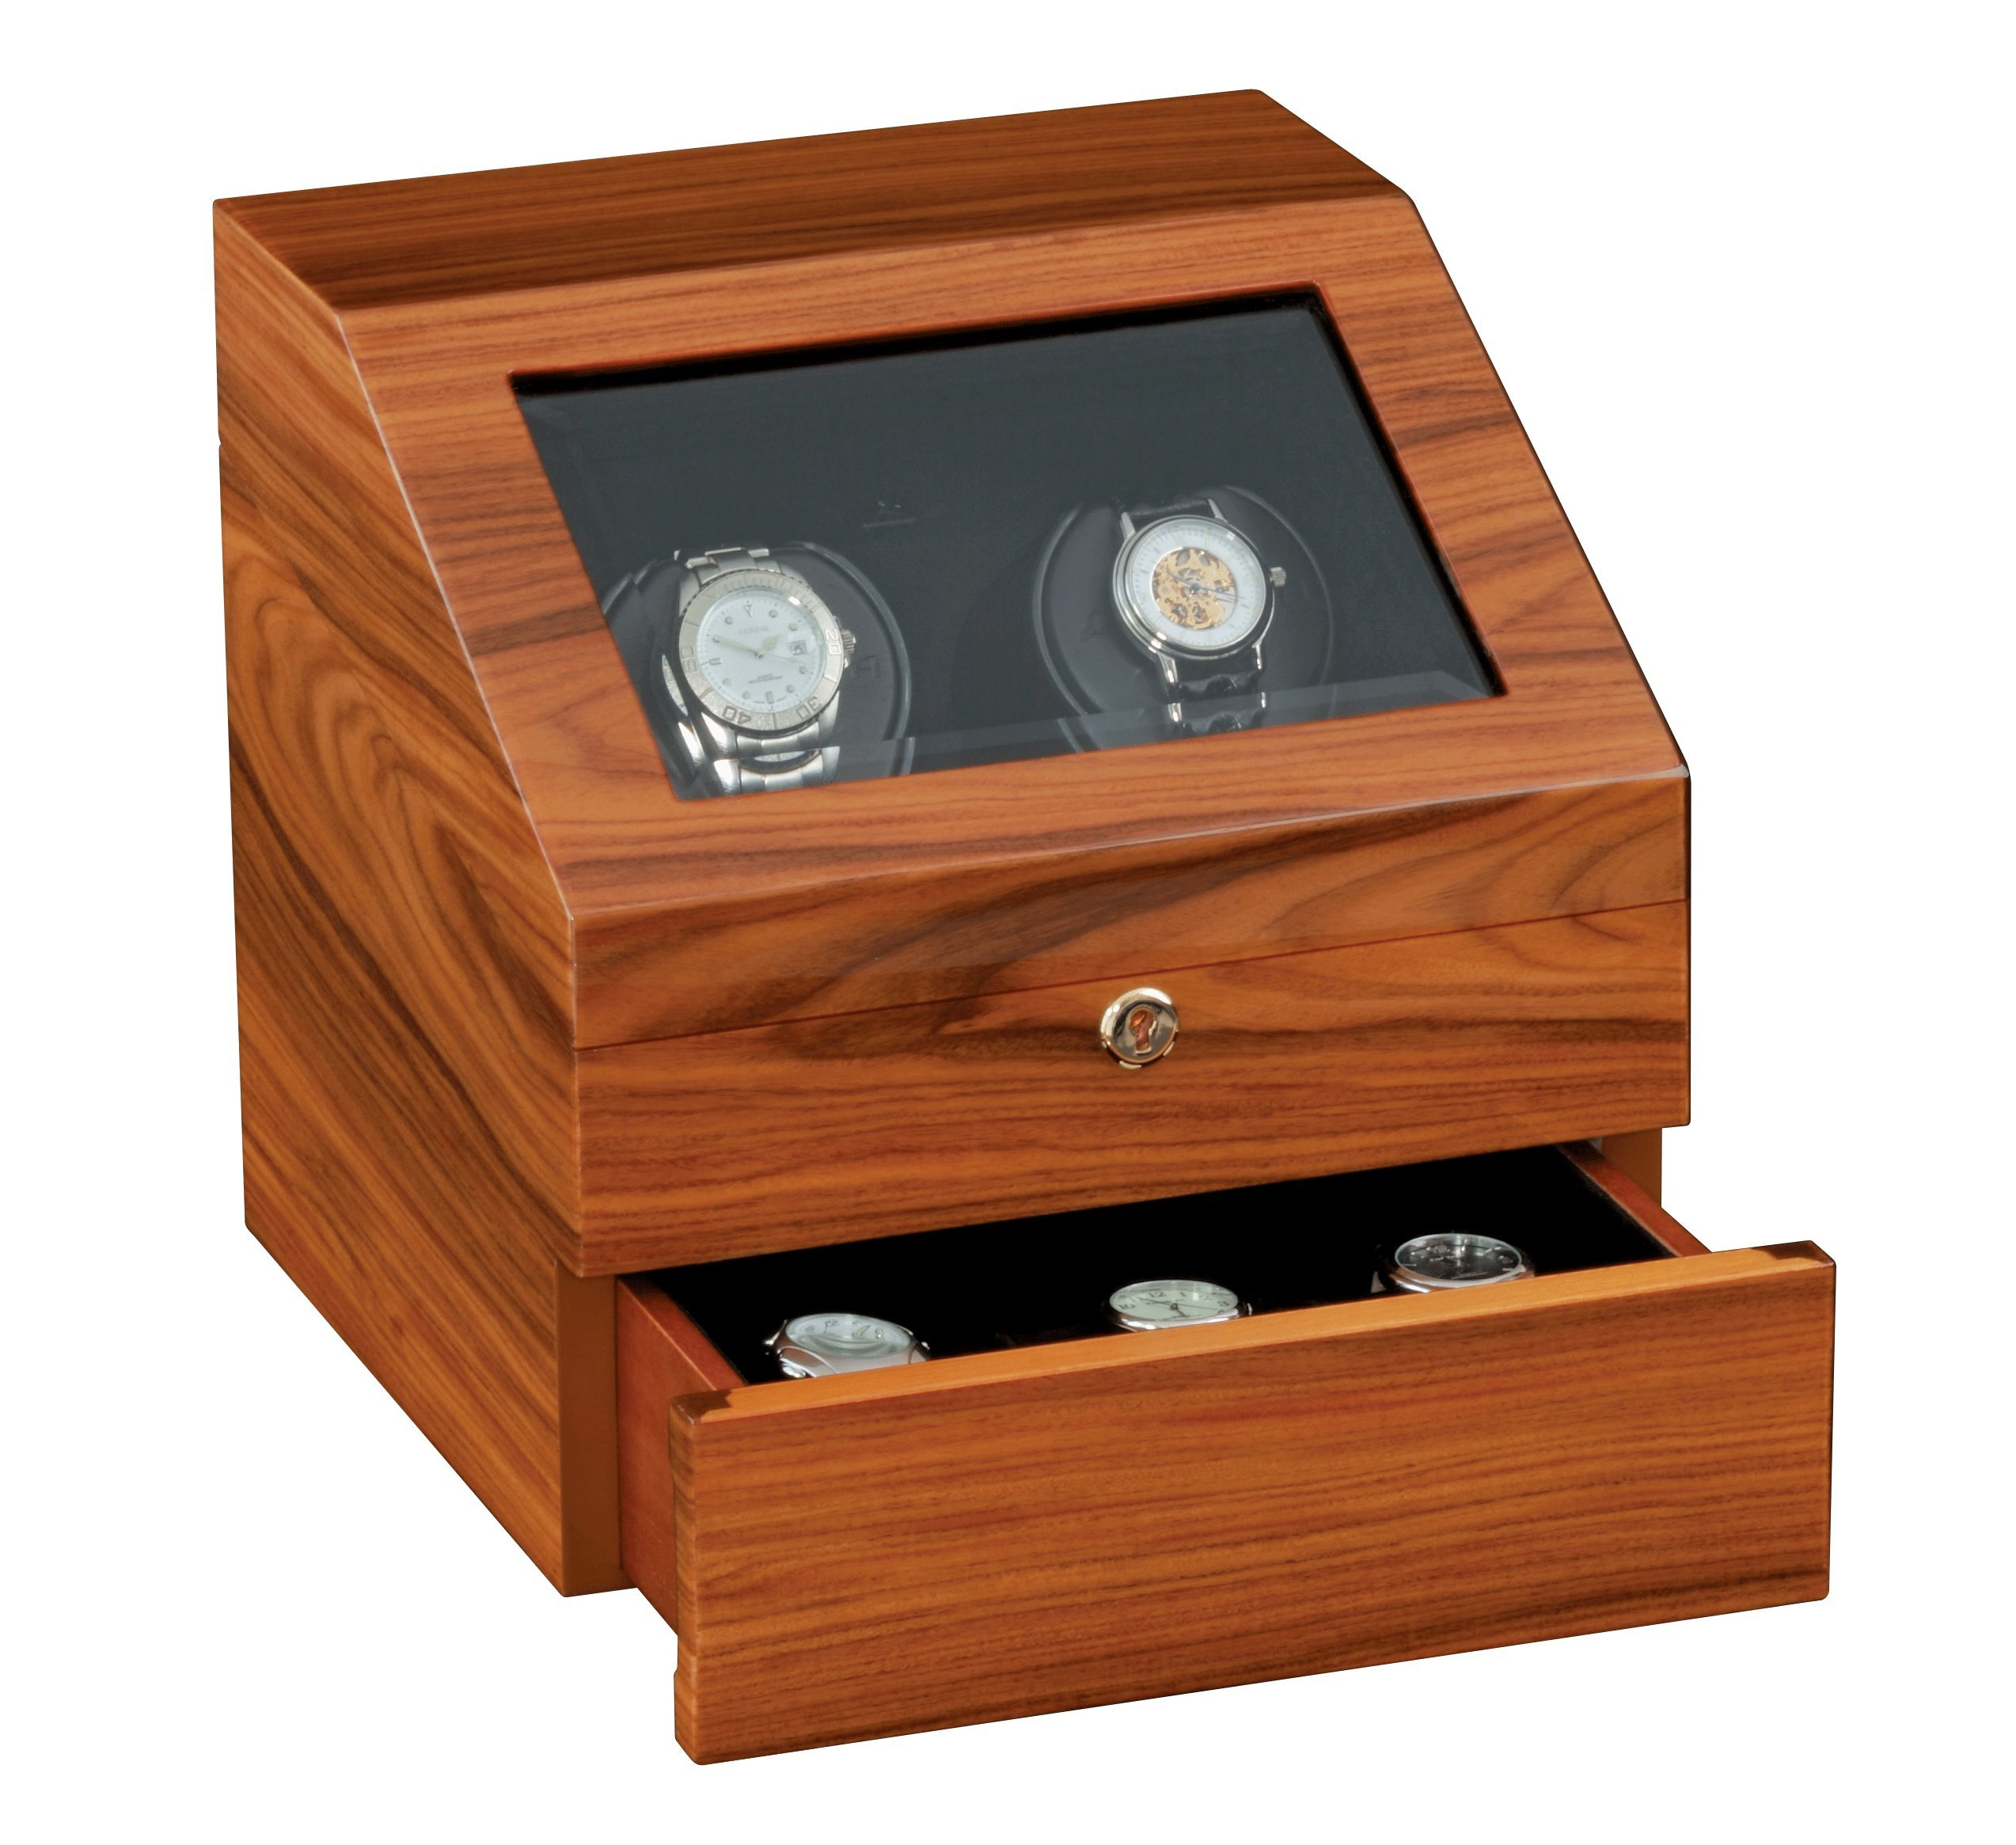 Siena Two Executive Teakwood Watchwinder by Orbita Model W13025